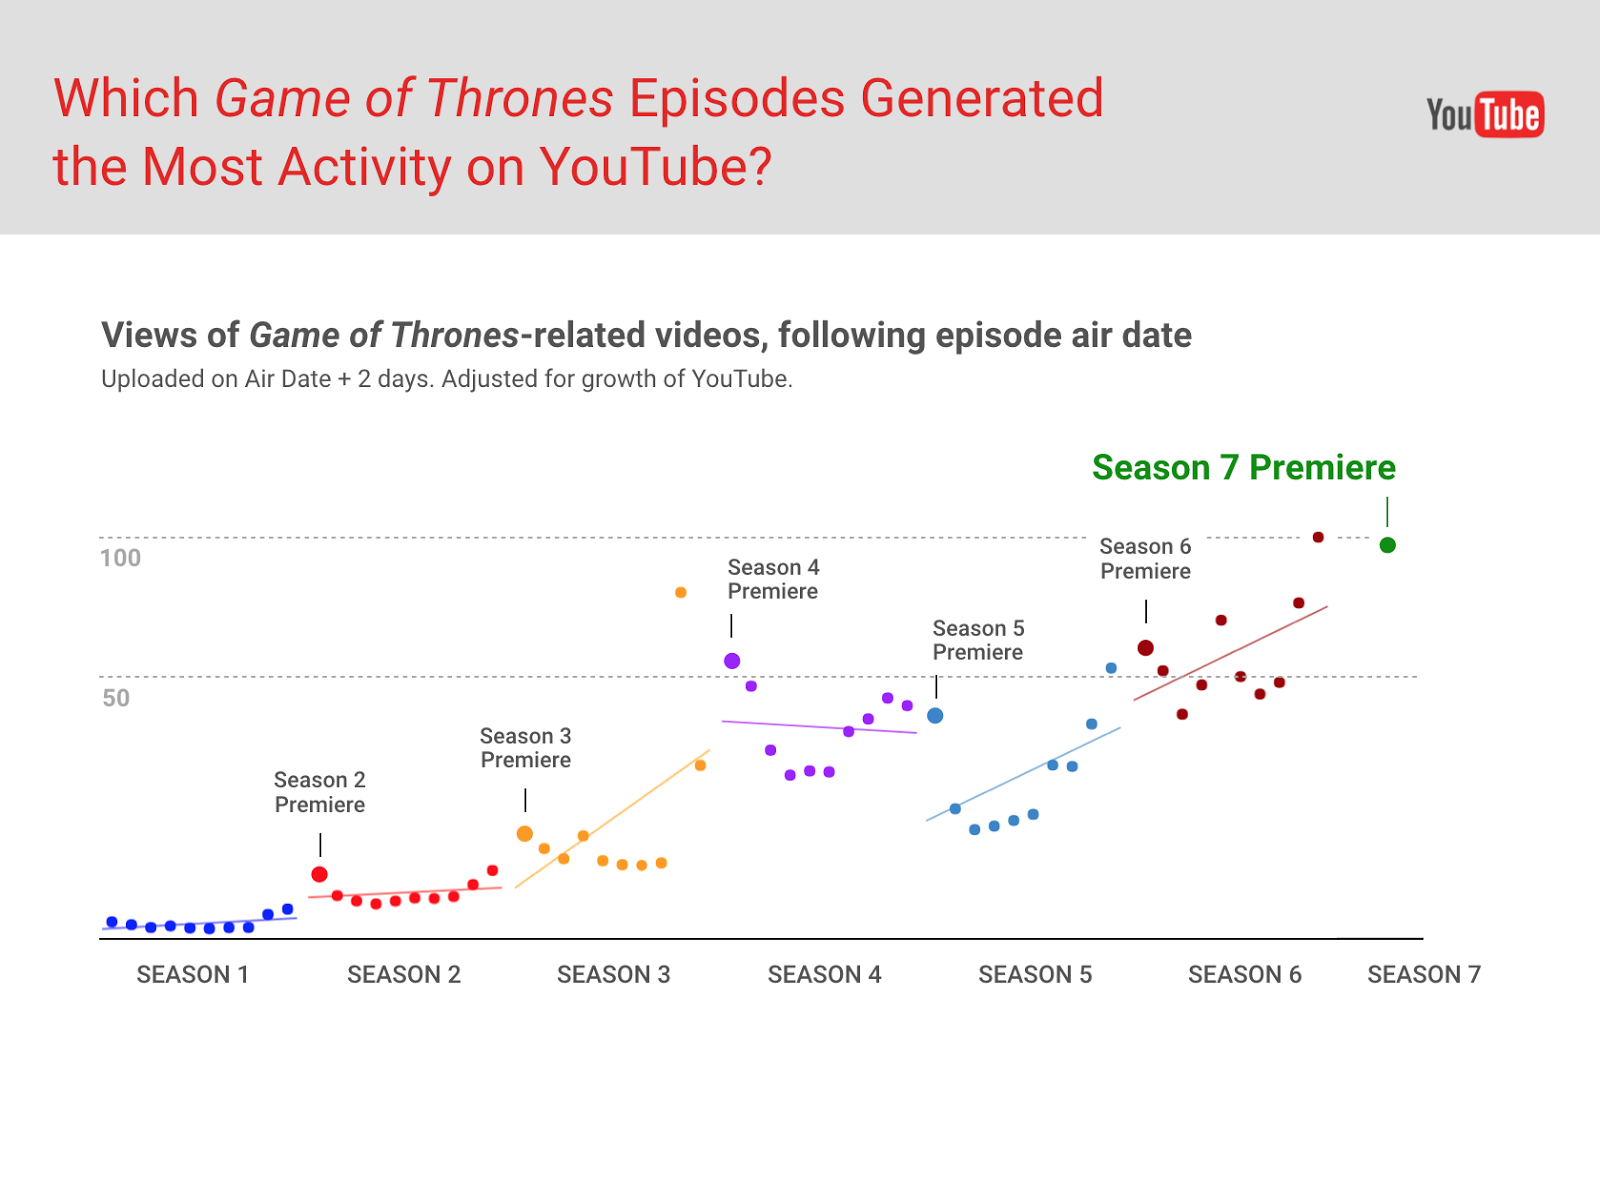 medium resolution of the season 7 premiere generated the most activity on youtube compared to any other premiere seasons 1 6